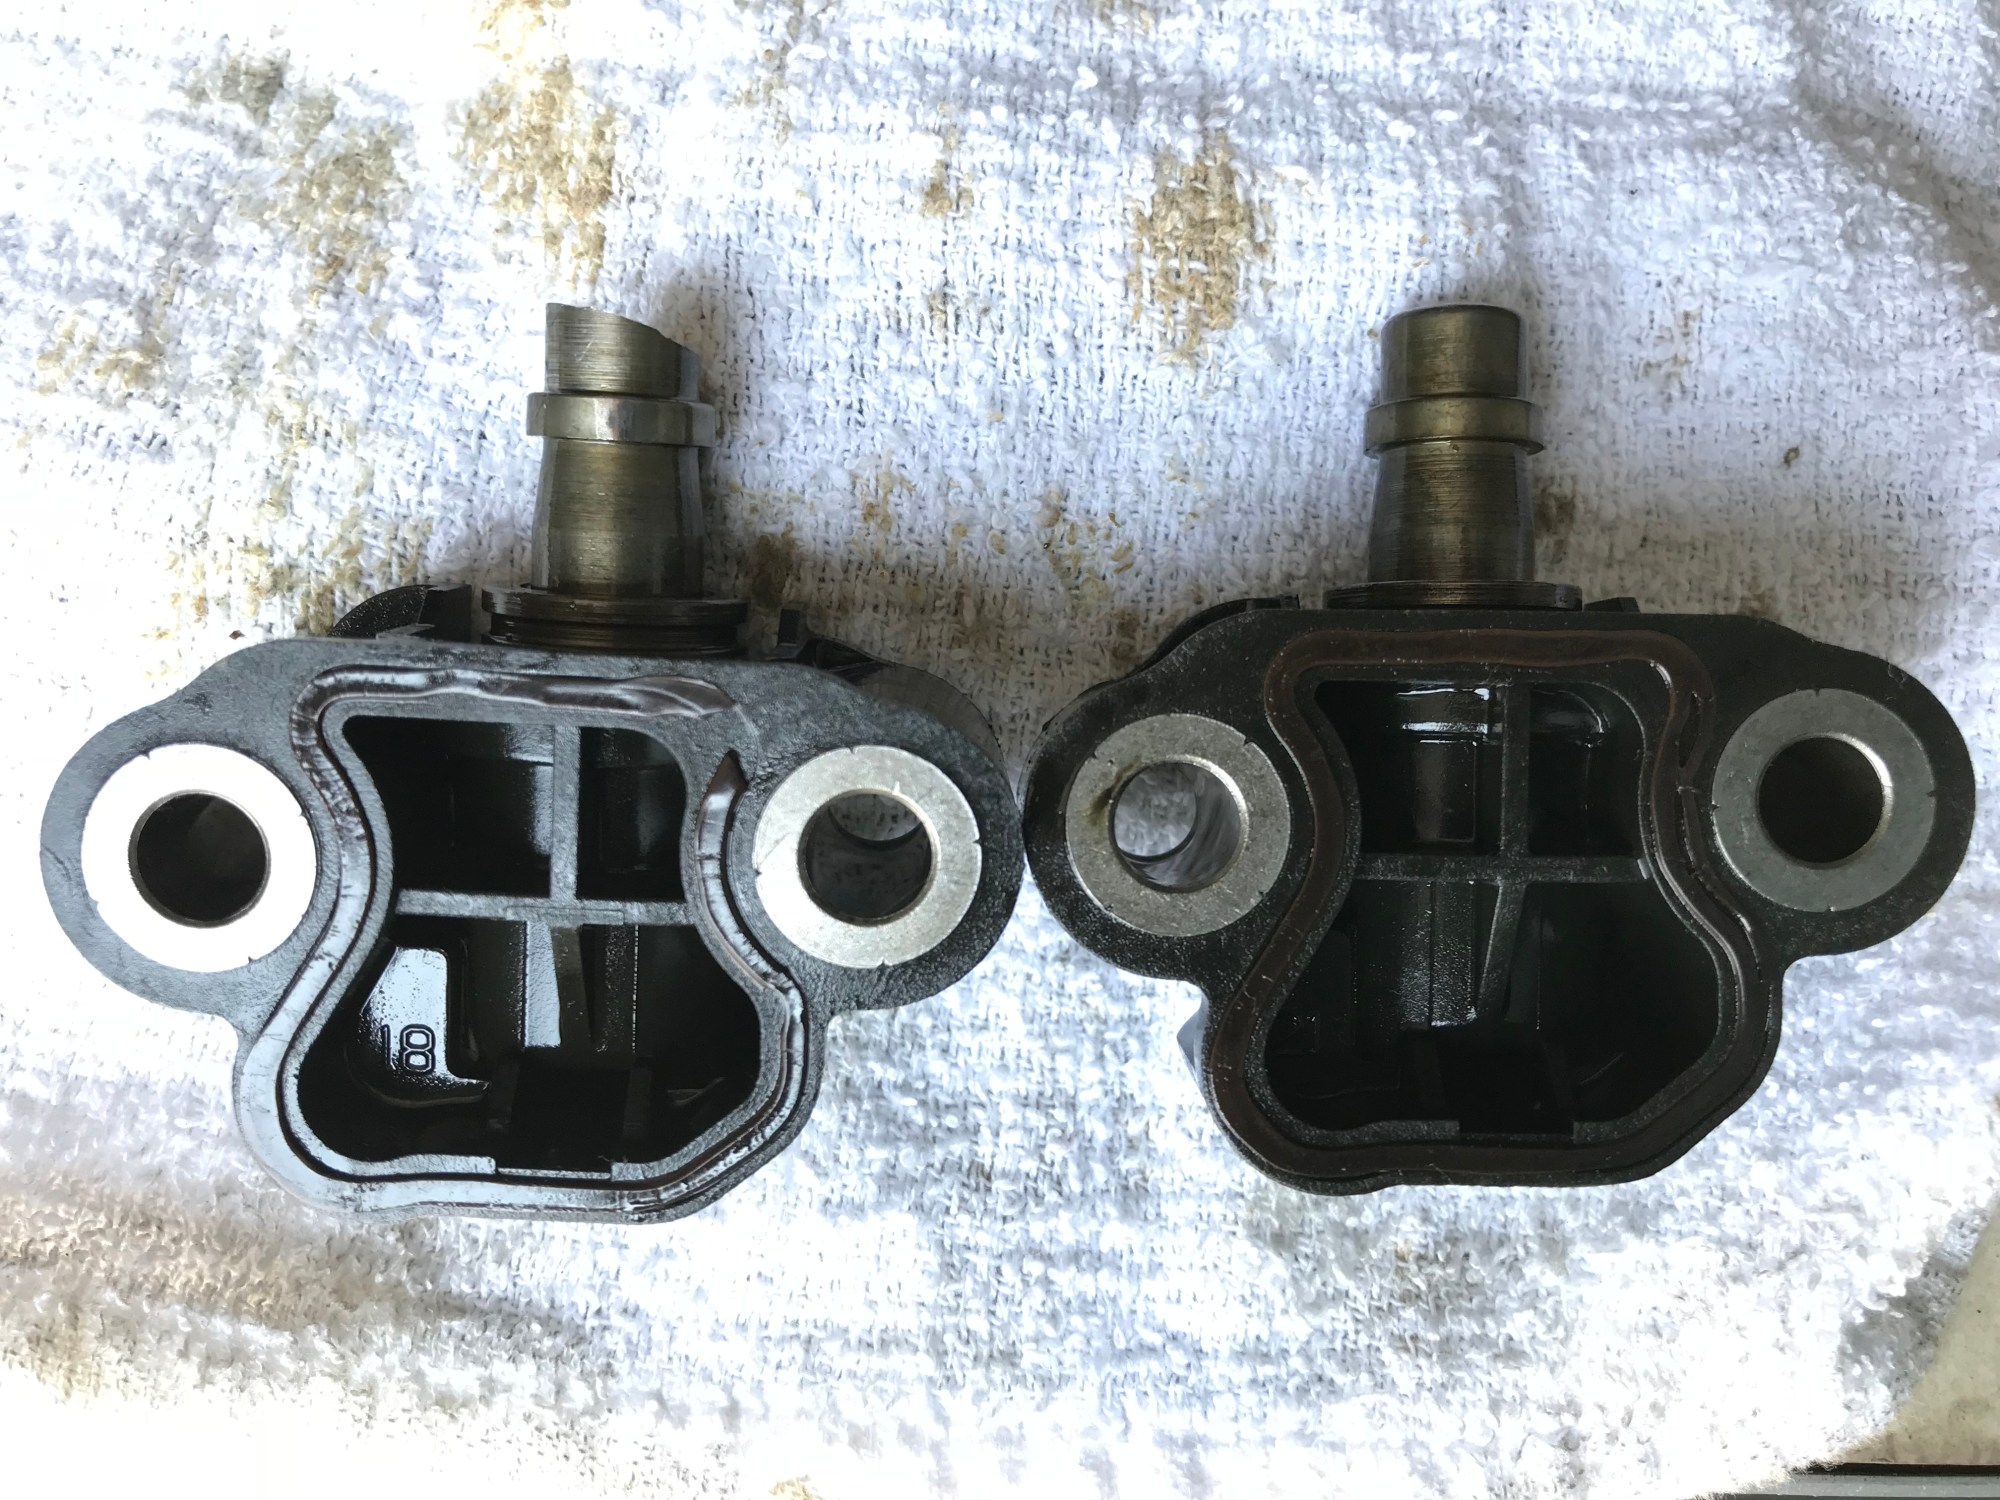 hight resolution of one the tensioner on the left was the one that broke through the guide and is missing a considerable amount of the head from the timing chain